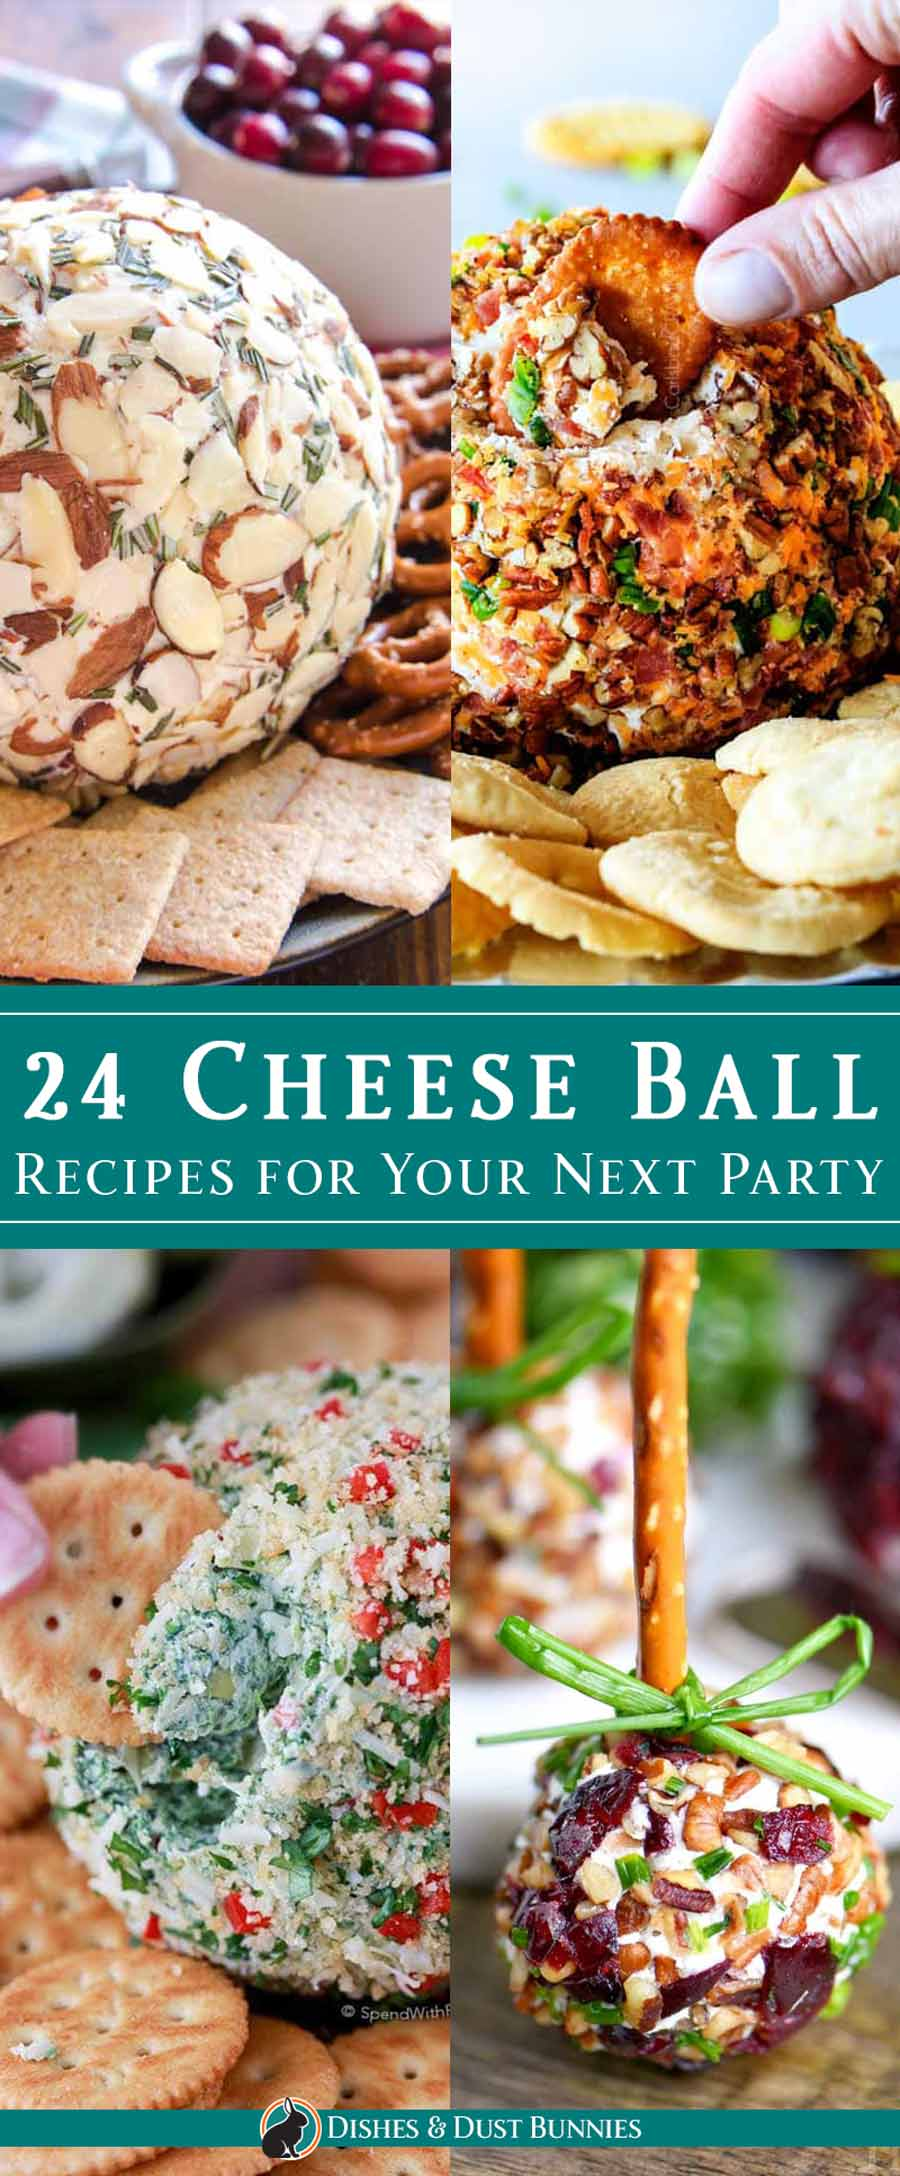 24 Cheese Ball Recipes for Your Next Party via @mvdustbunnies